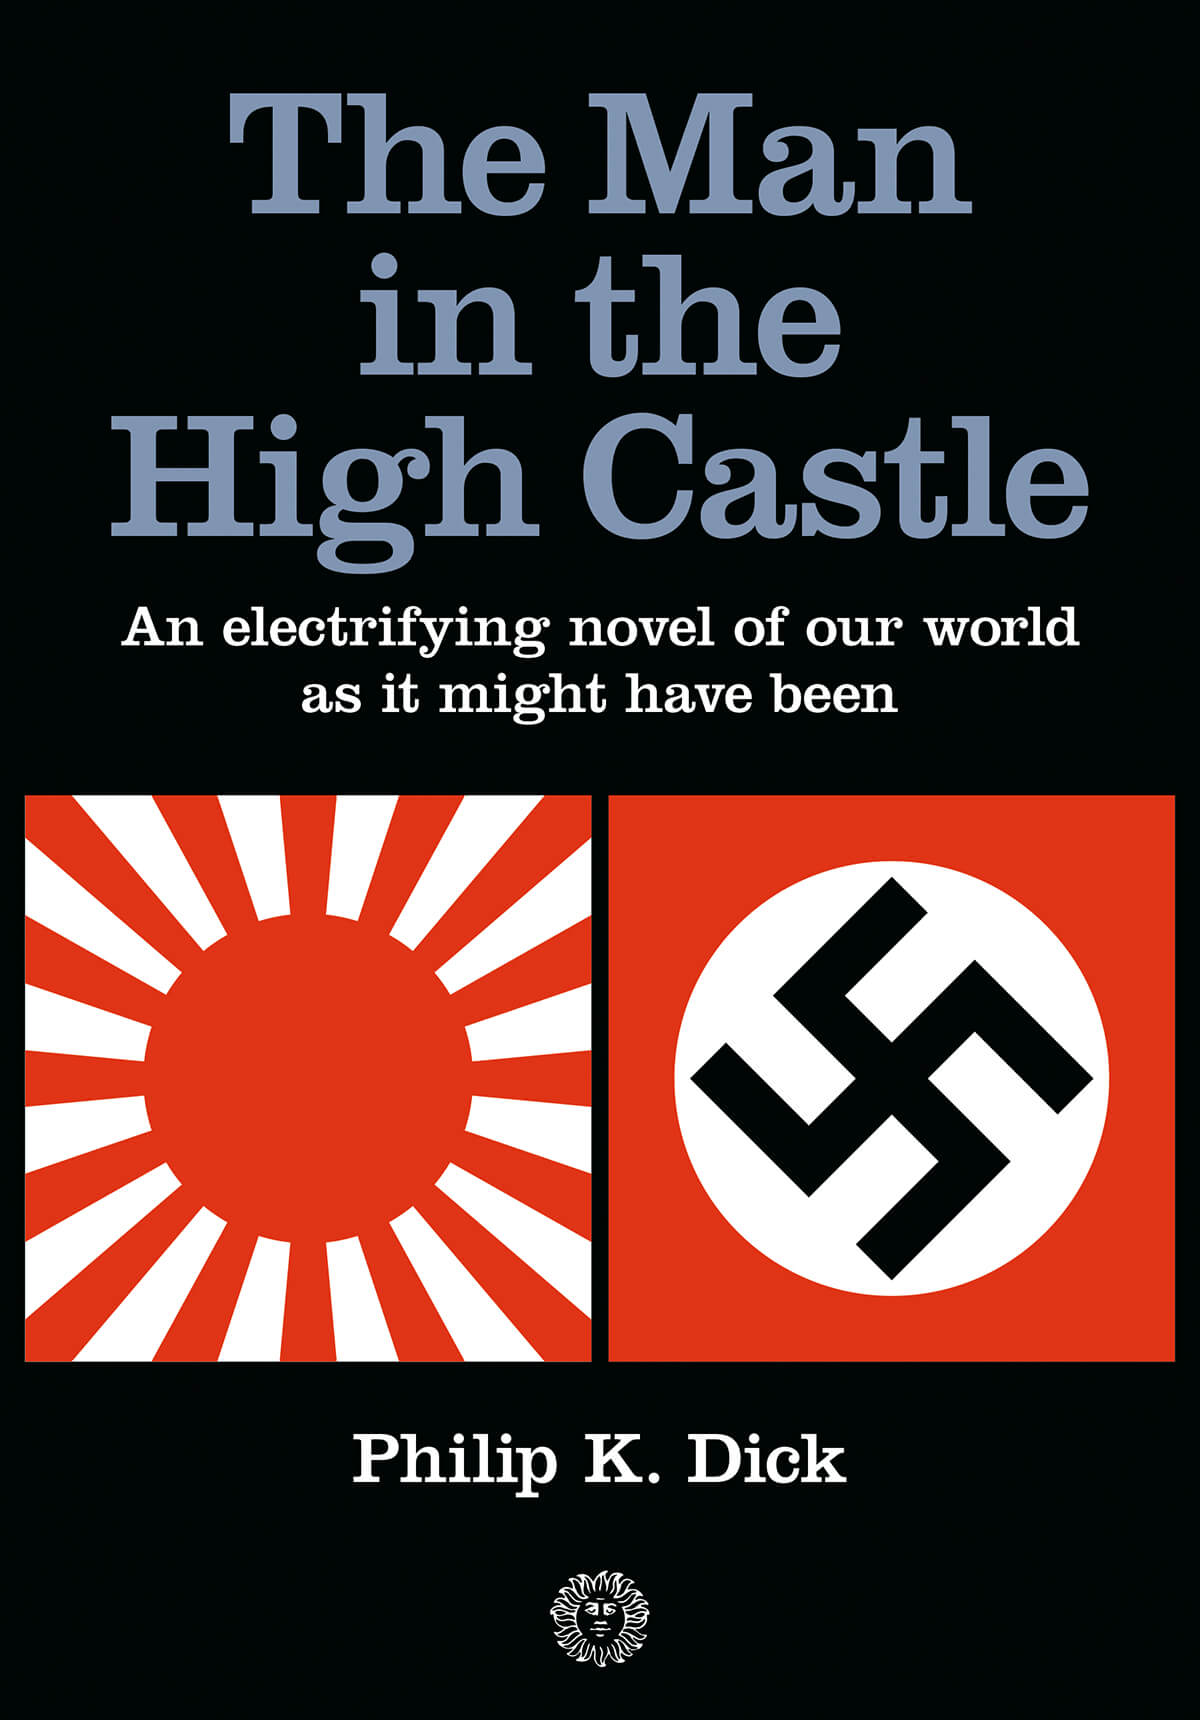 The Man in the High Castle Putnam